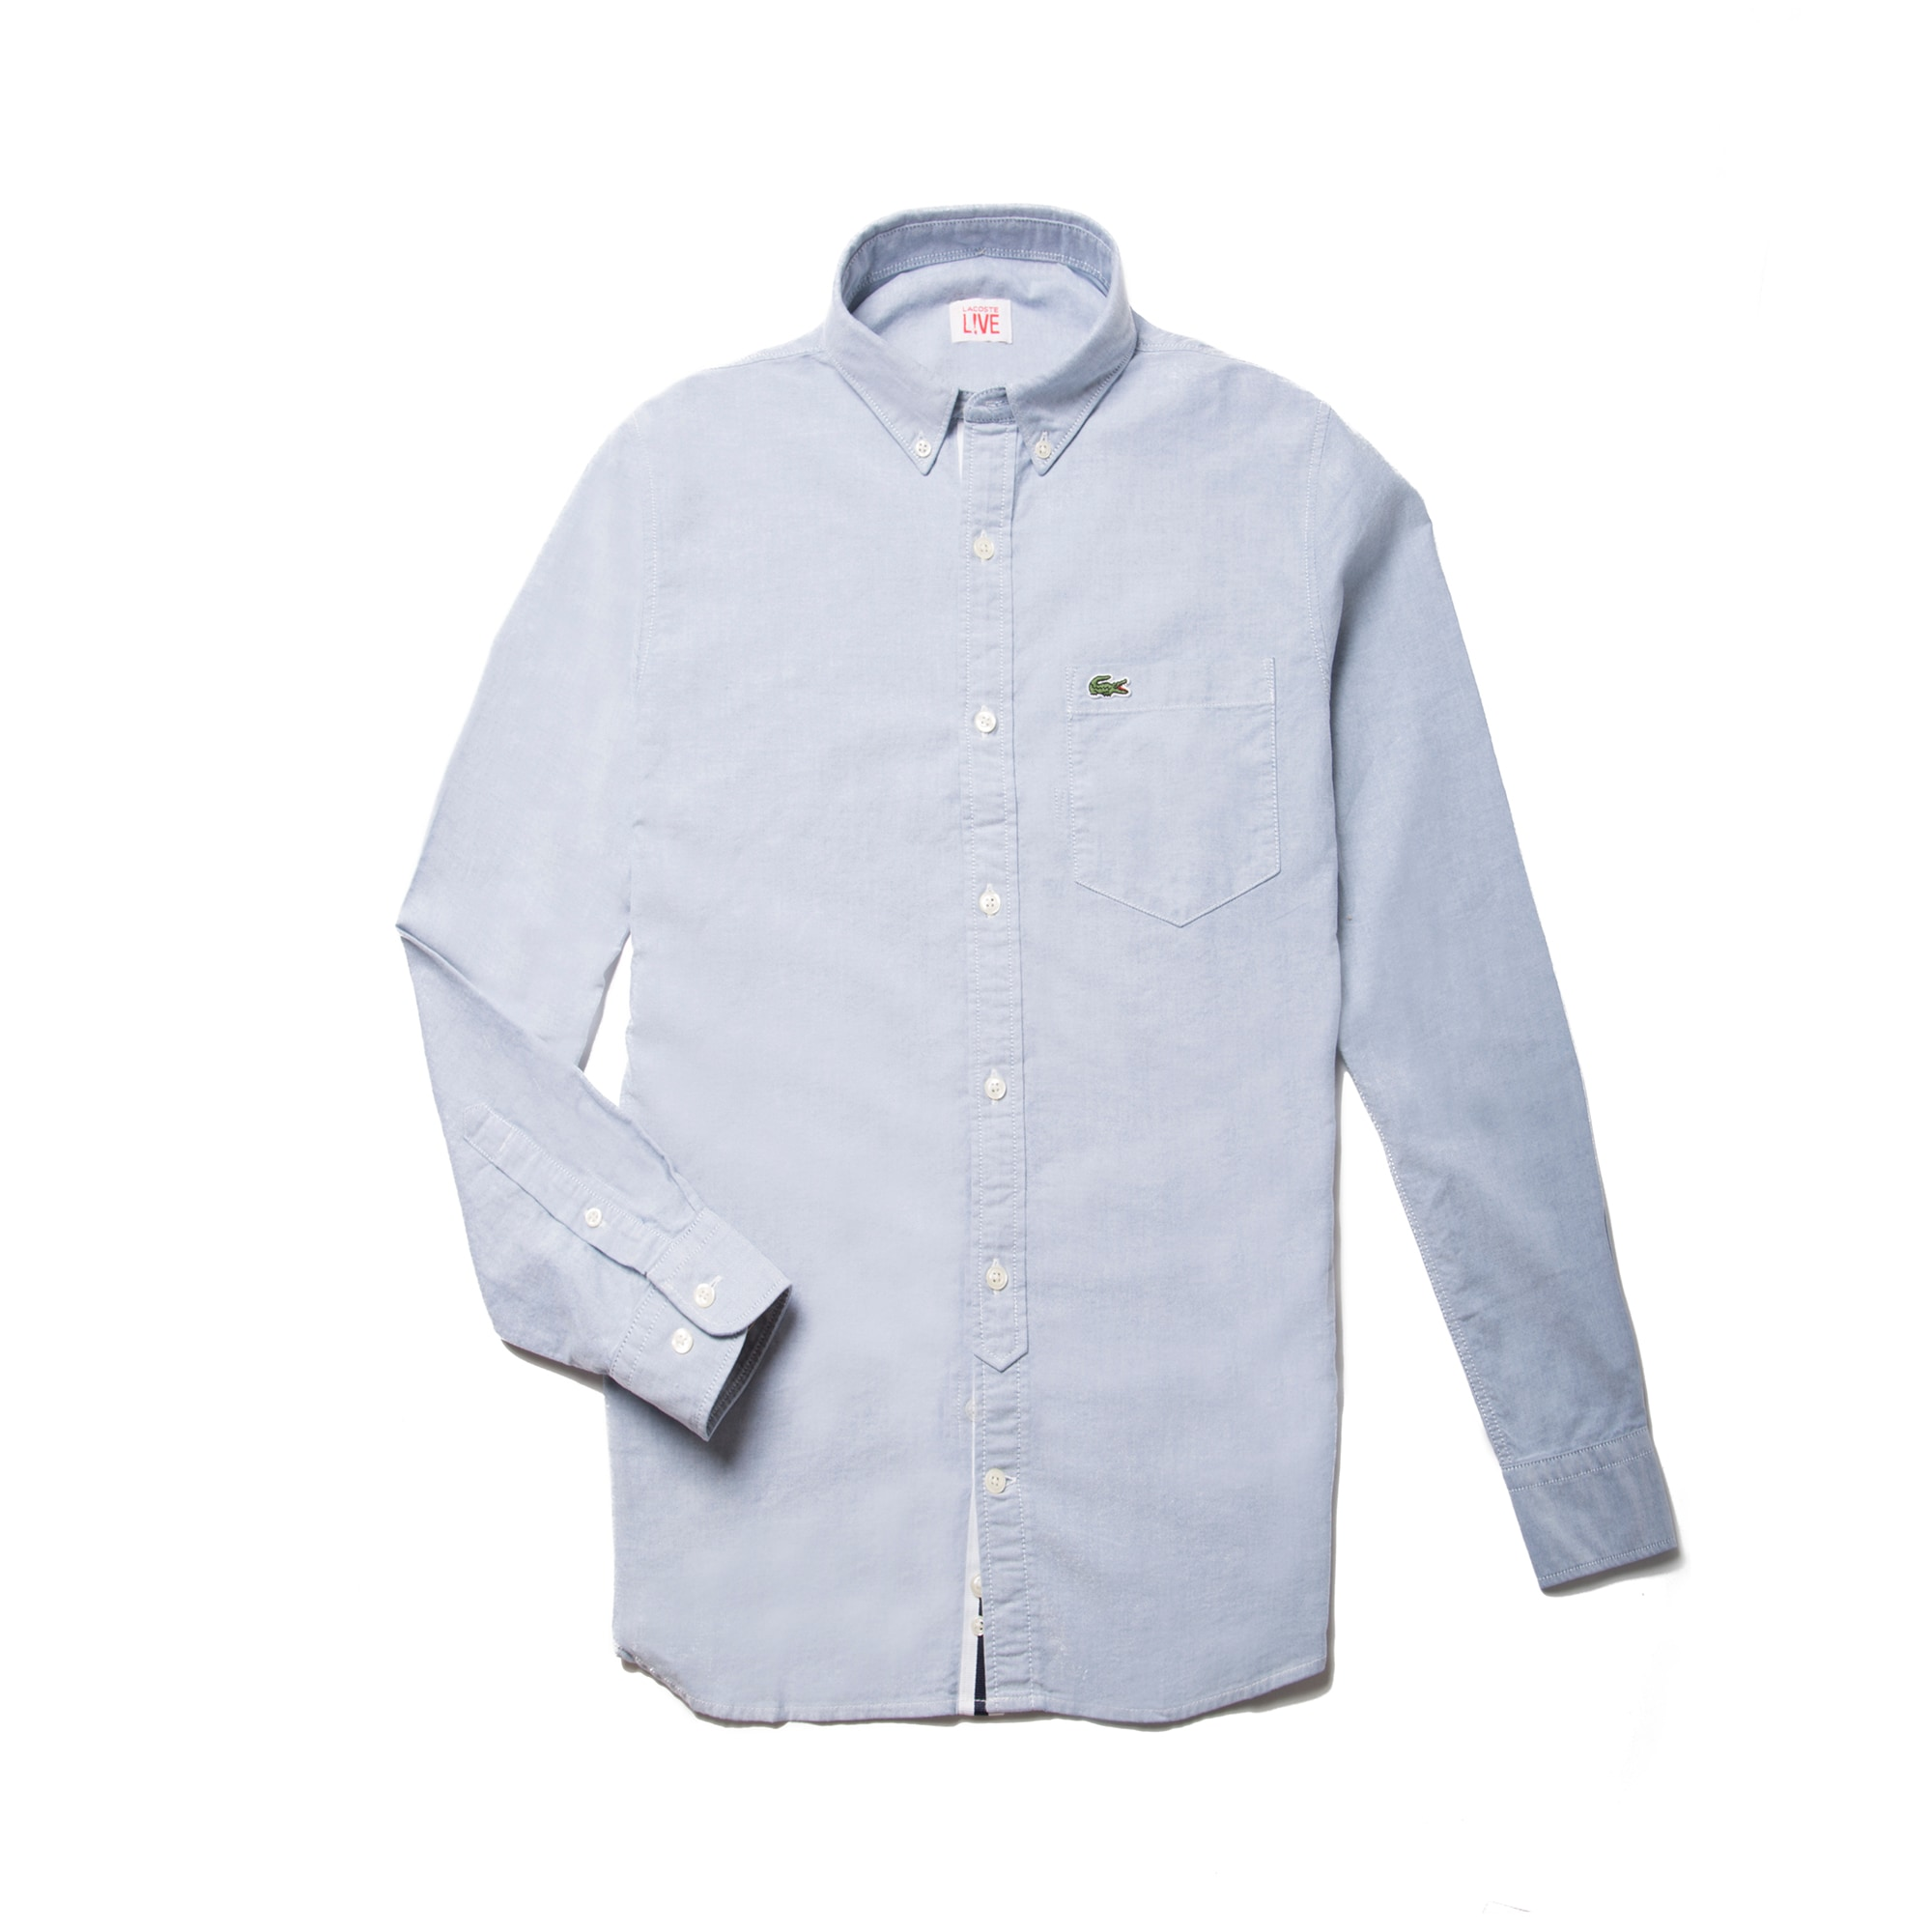 Men's  LIVE Slim Fit Oxford Cotton Shirt